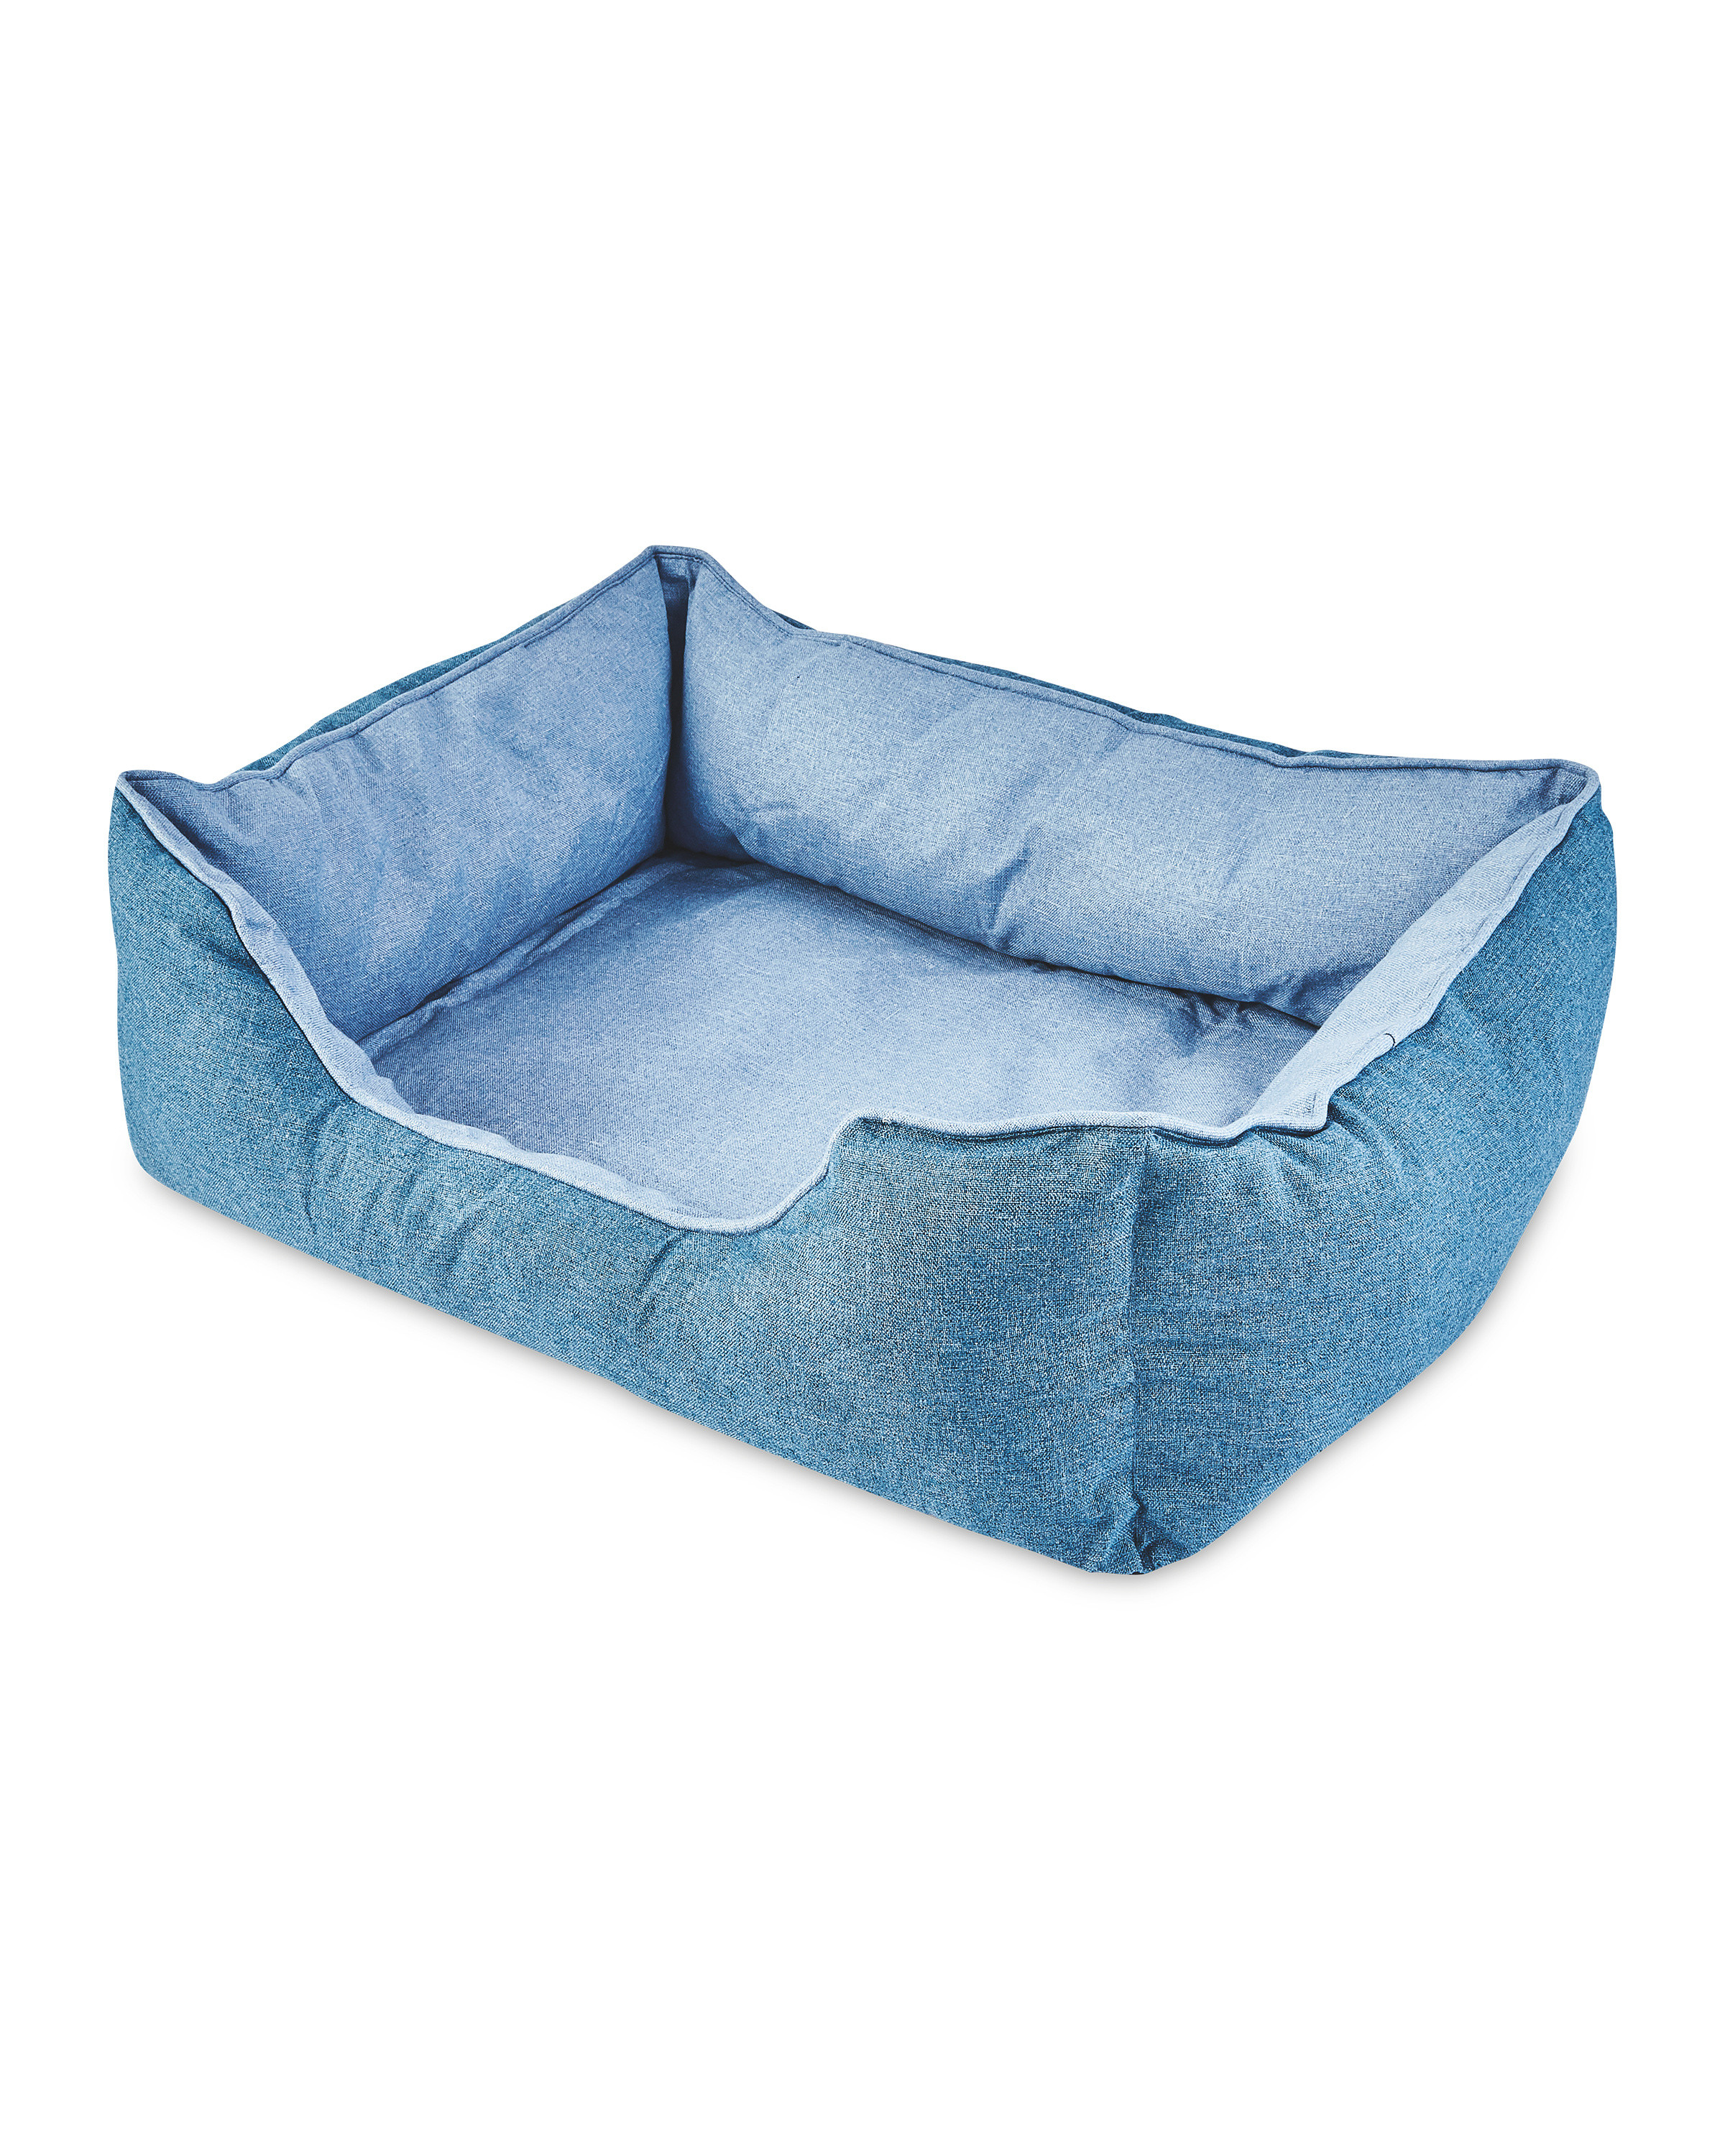 Rosewood Cooling Pet Bed